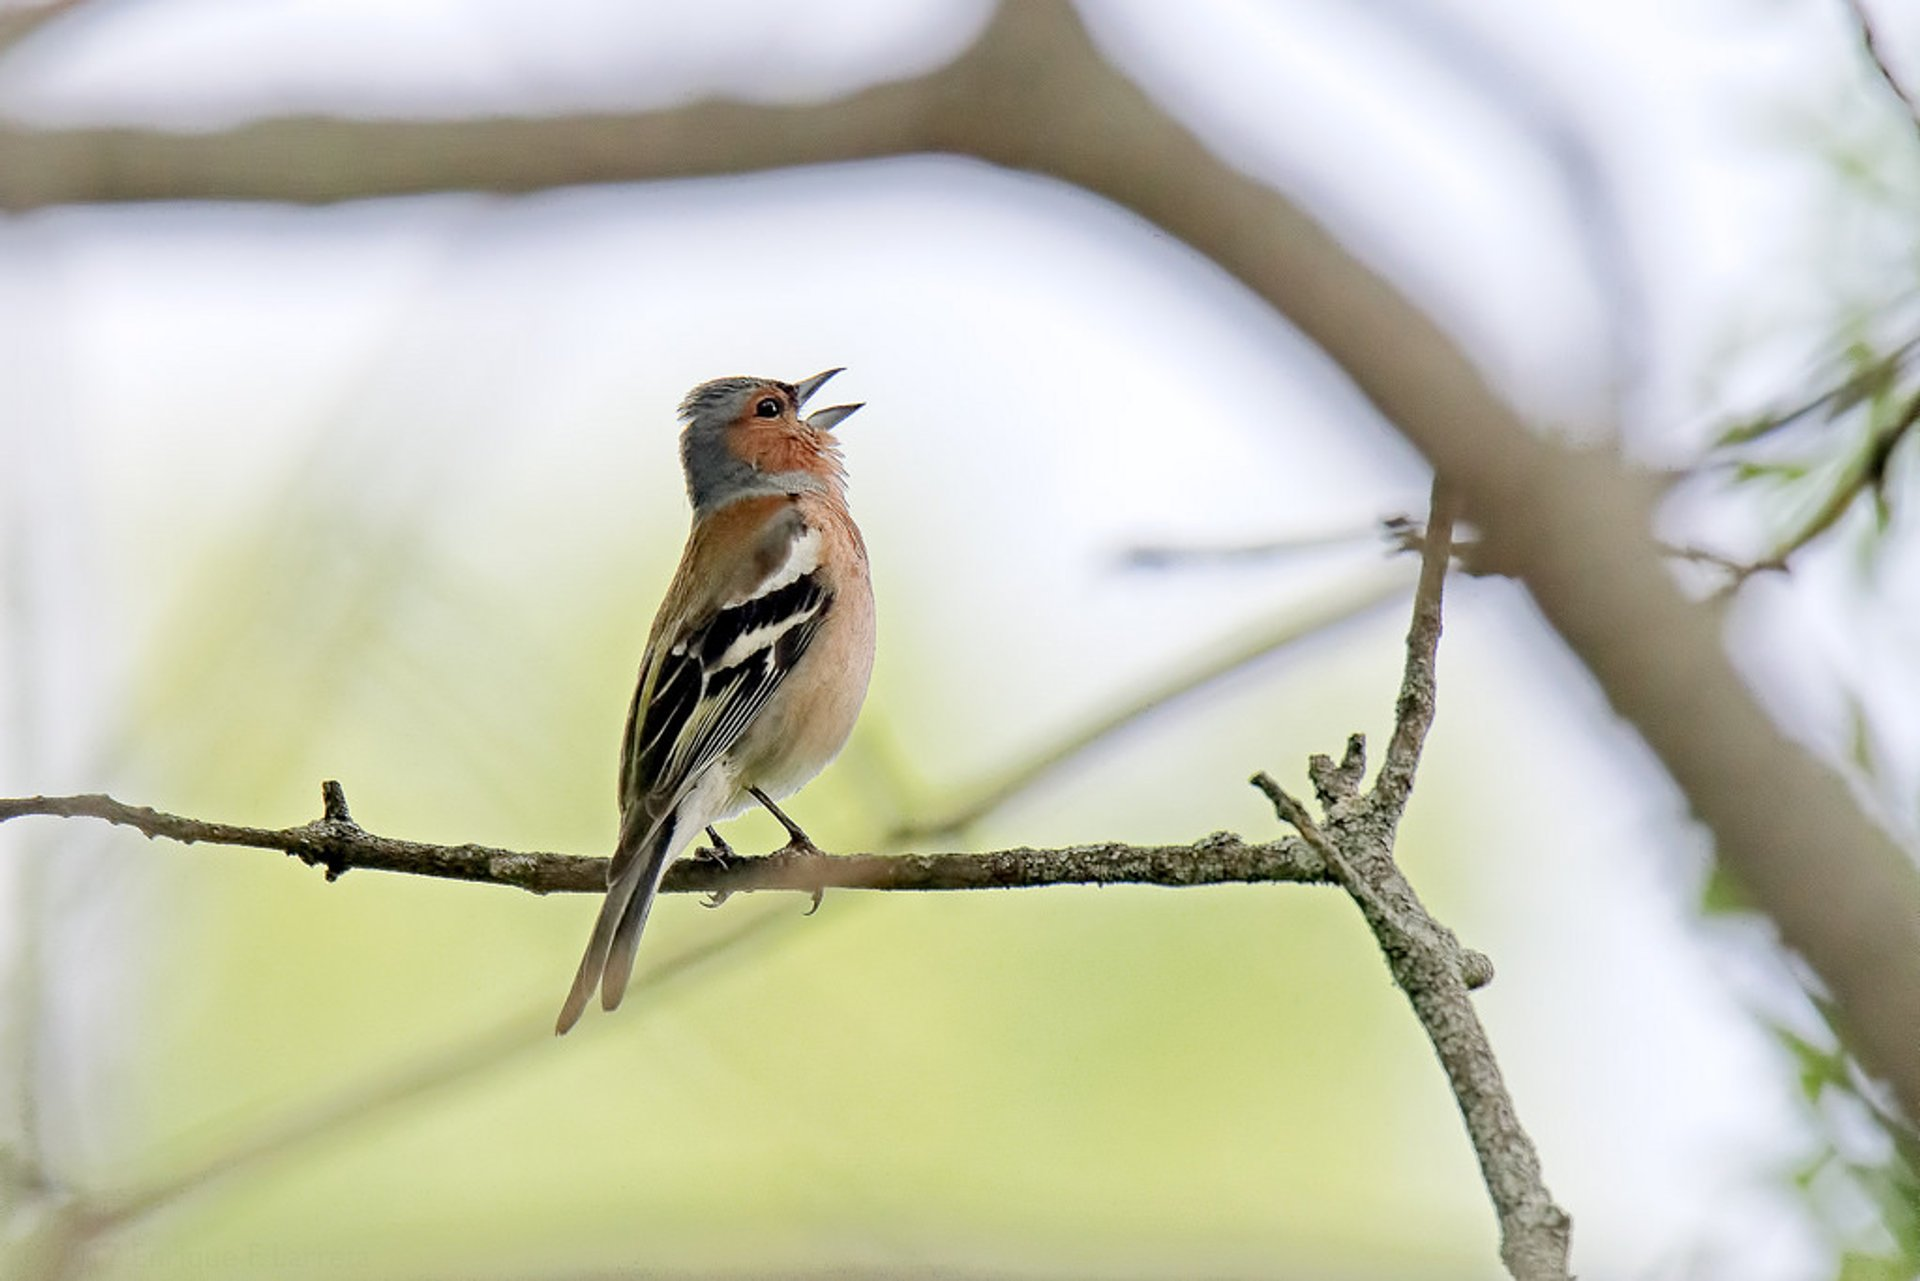 Singing male chaffinch (Fringilla coelebs)